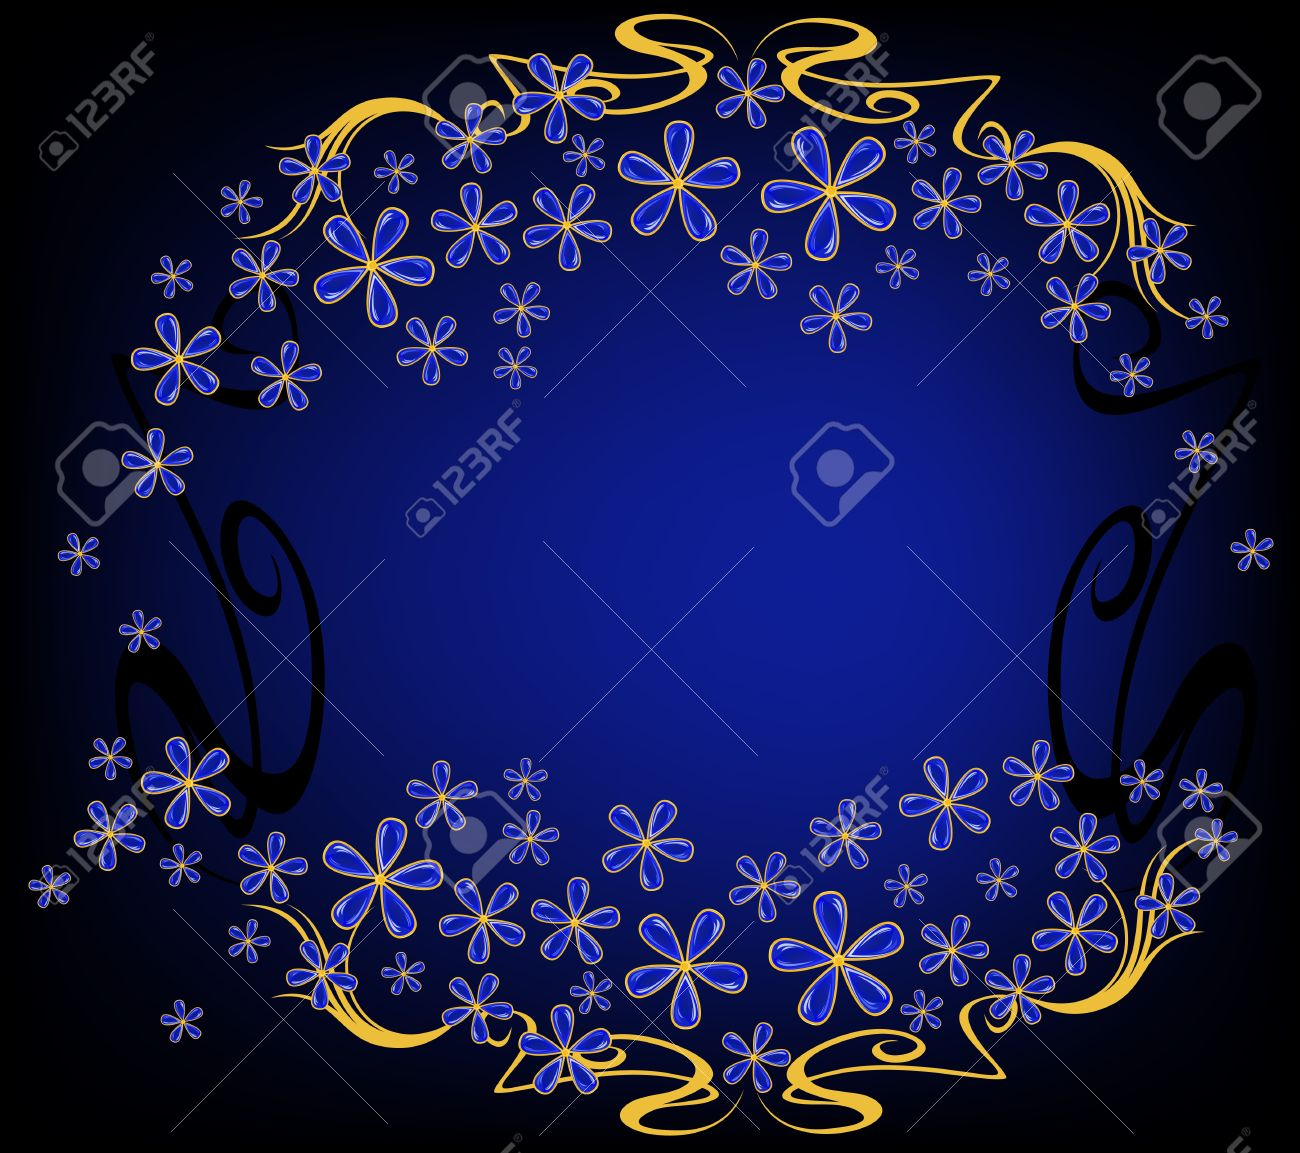 background with jewelry flowers - blue and gold against black Stock Vector - 16593871